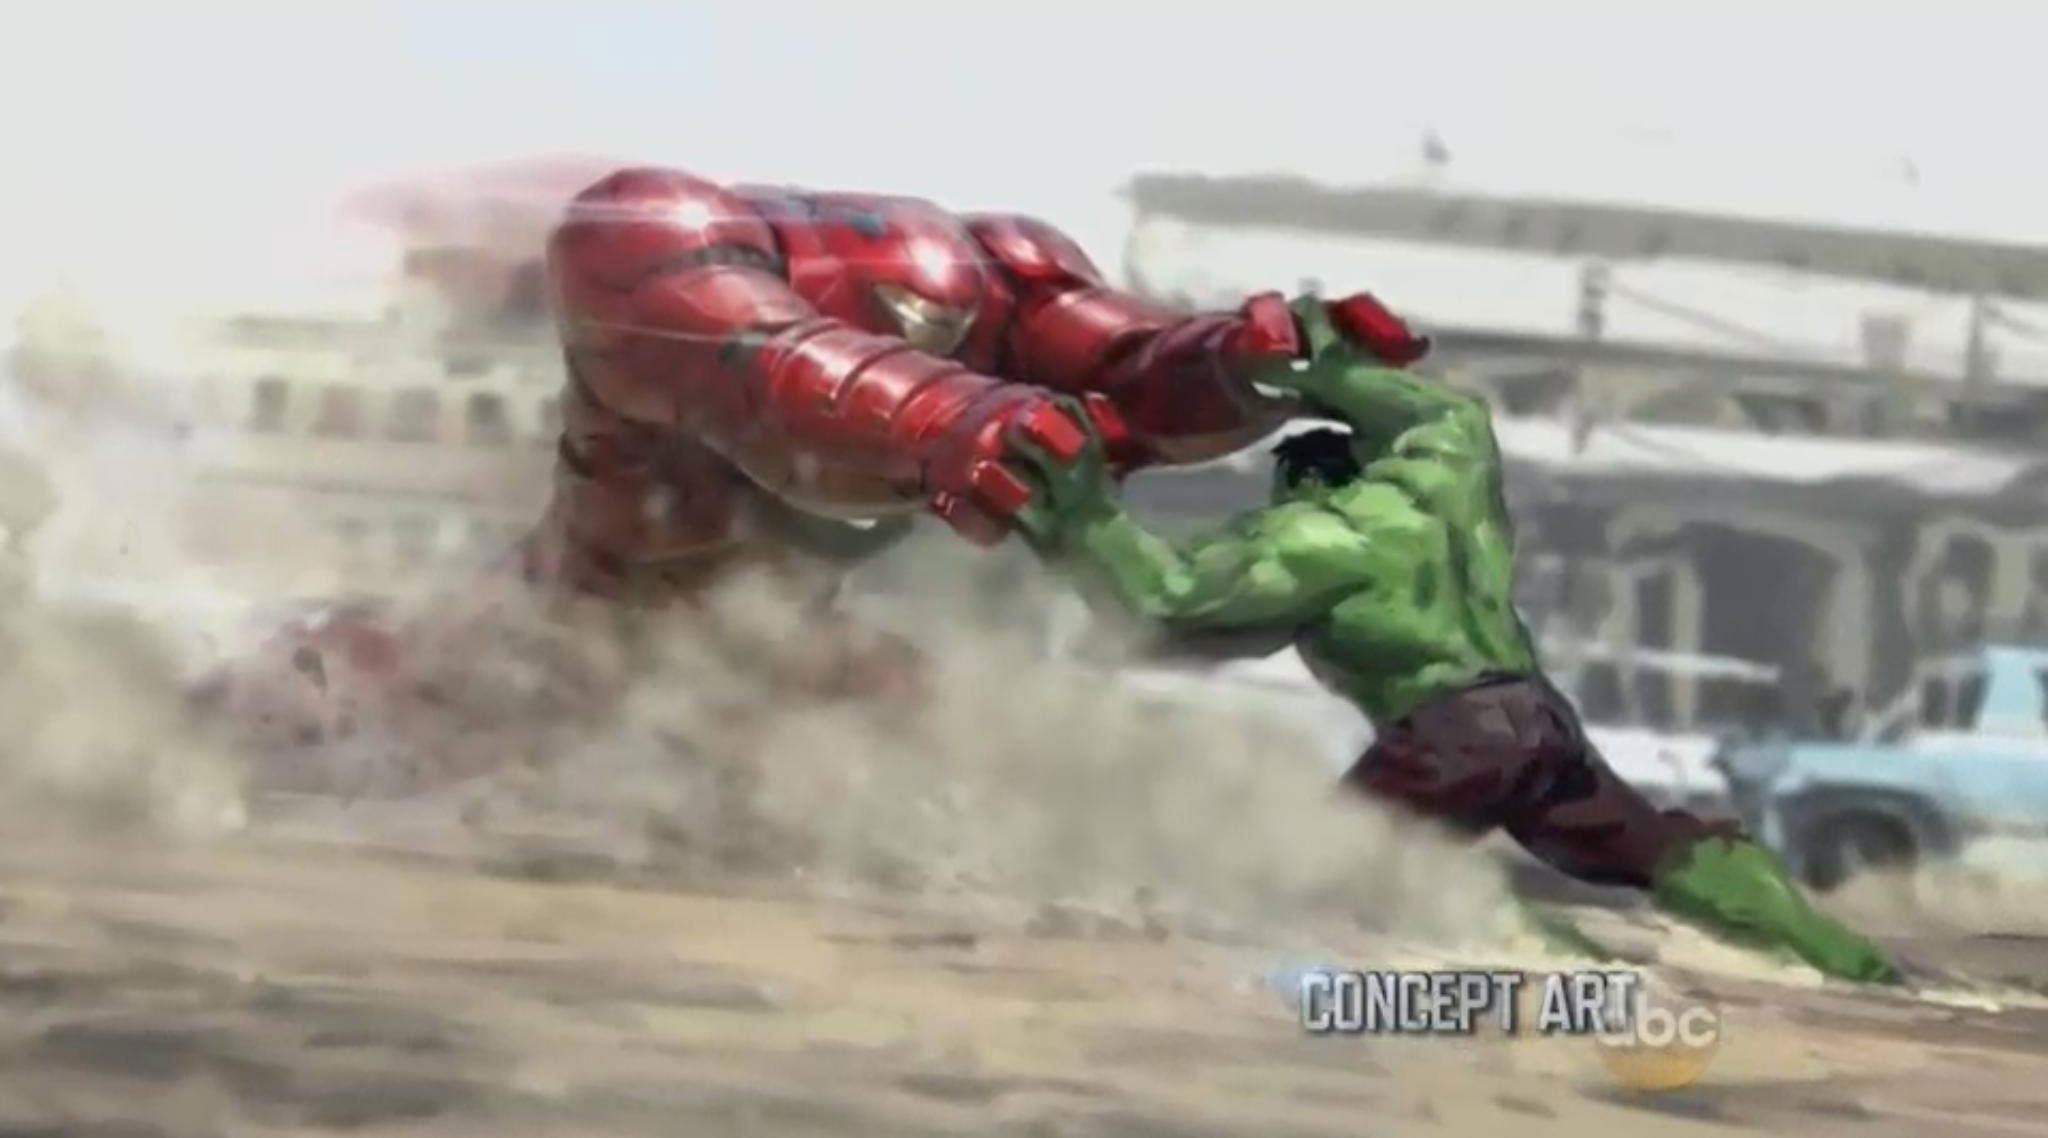 [CINEMA][Topico Oficial] Avengers: Age of Ultron - Visual do Visão! - Página 22 Hulkbuster_Concept_Art_for_Avengers_Age_of_Ultron